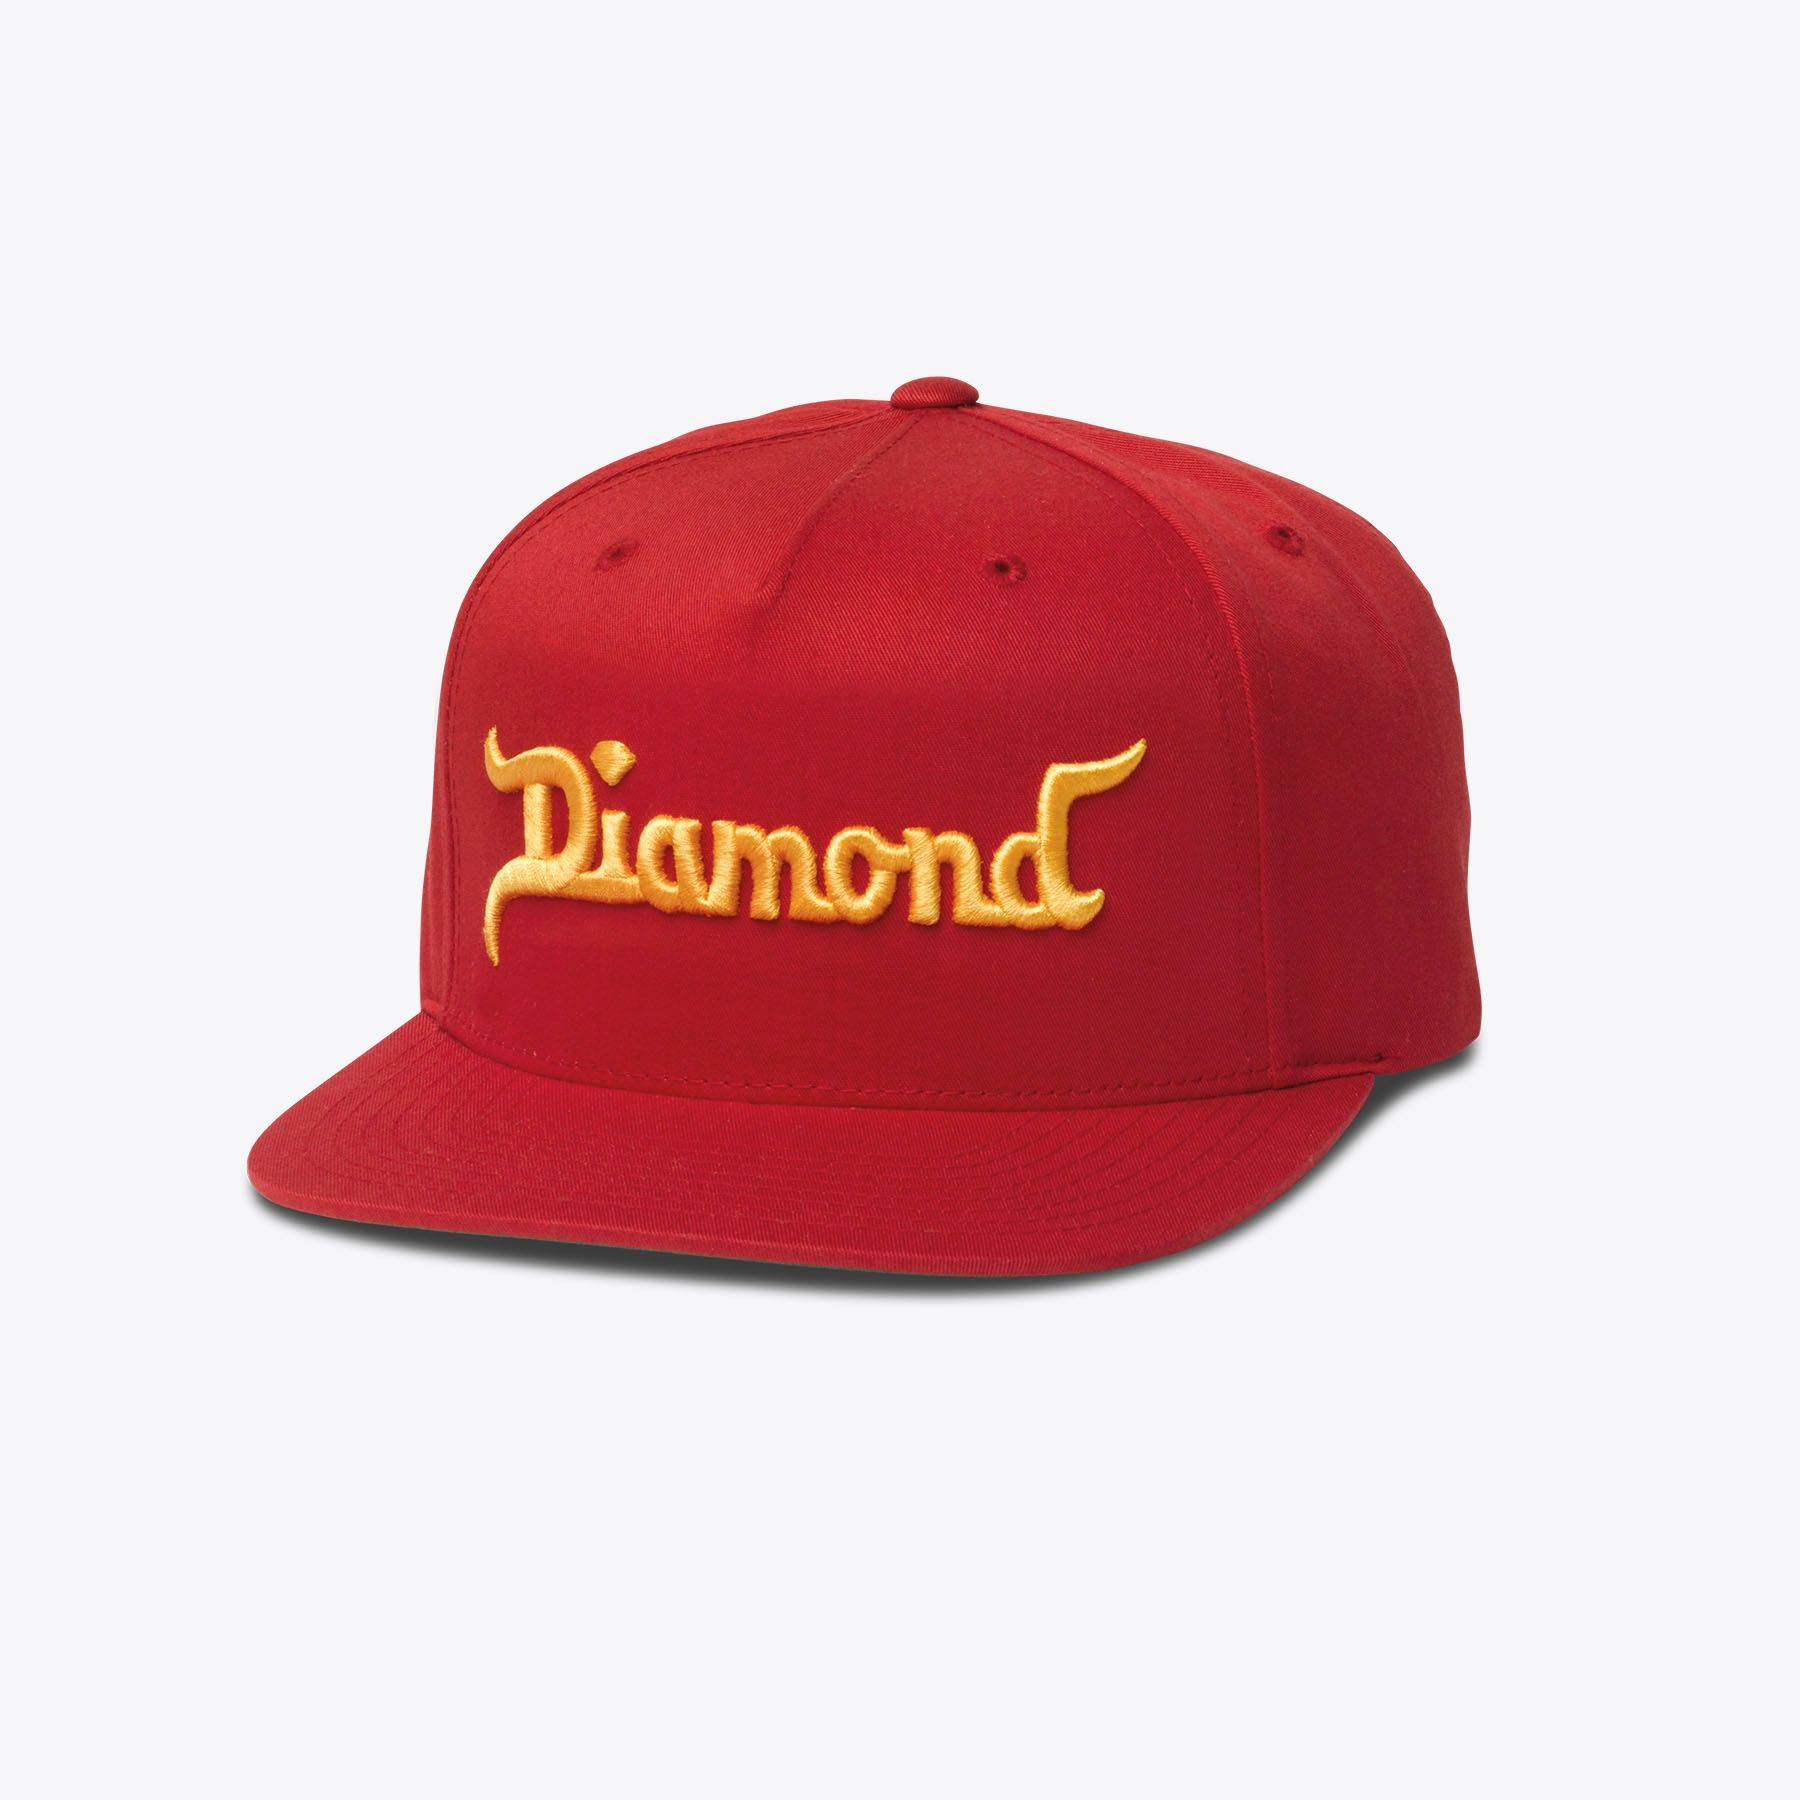 43908c6369a Diamond King Snapback in Red Orange